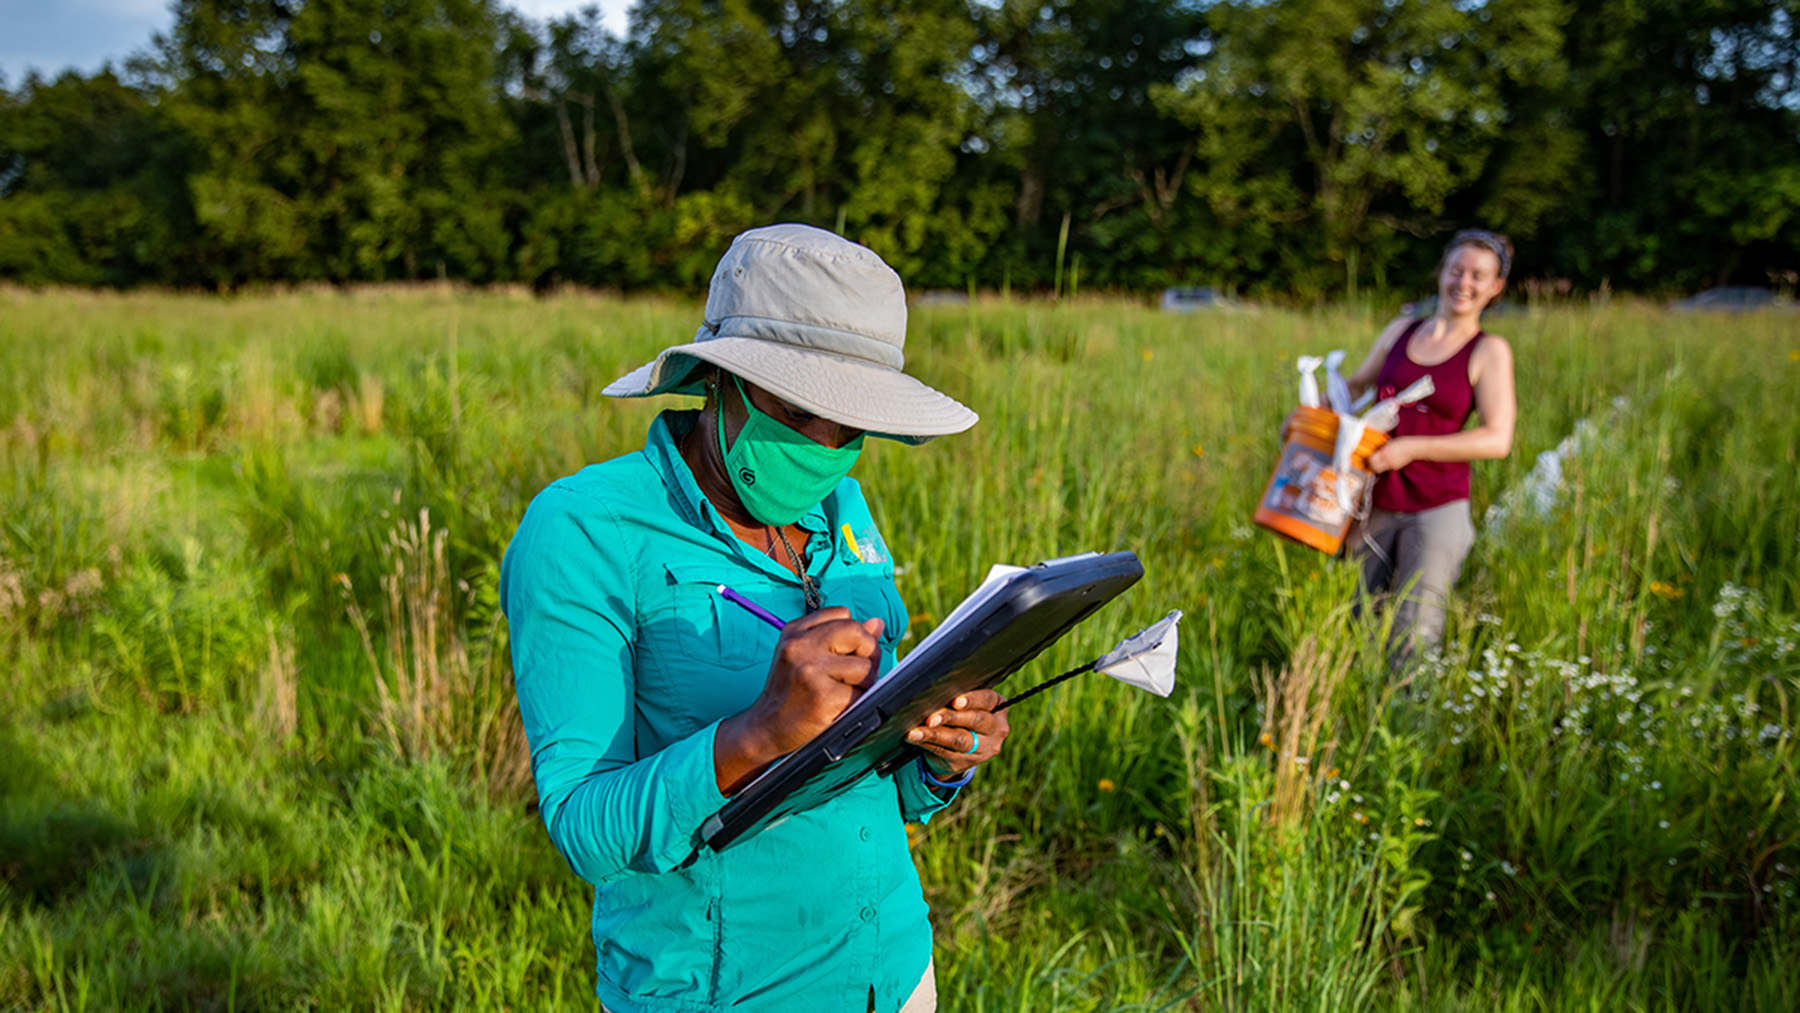 Entomology professor Alexandra Harmon-Threatt and undergraduate student Sabine Miller prepare for an evening of work in a prairie the professor created to study ground-nesting bees.  Photo by Fred Zwicky